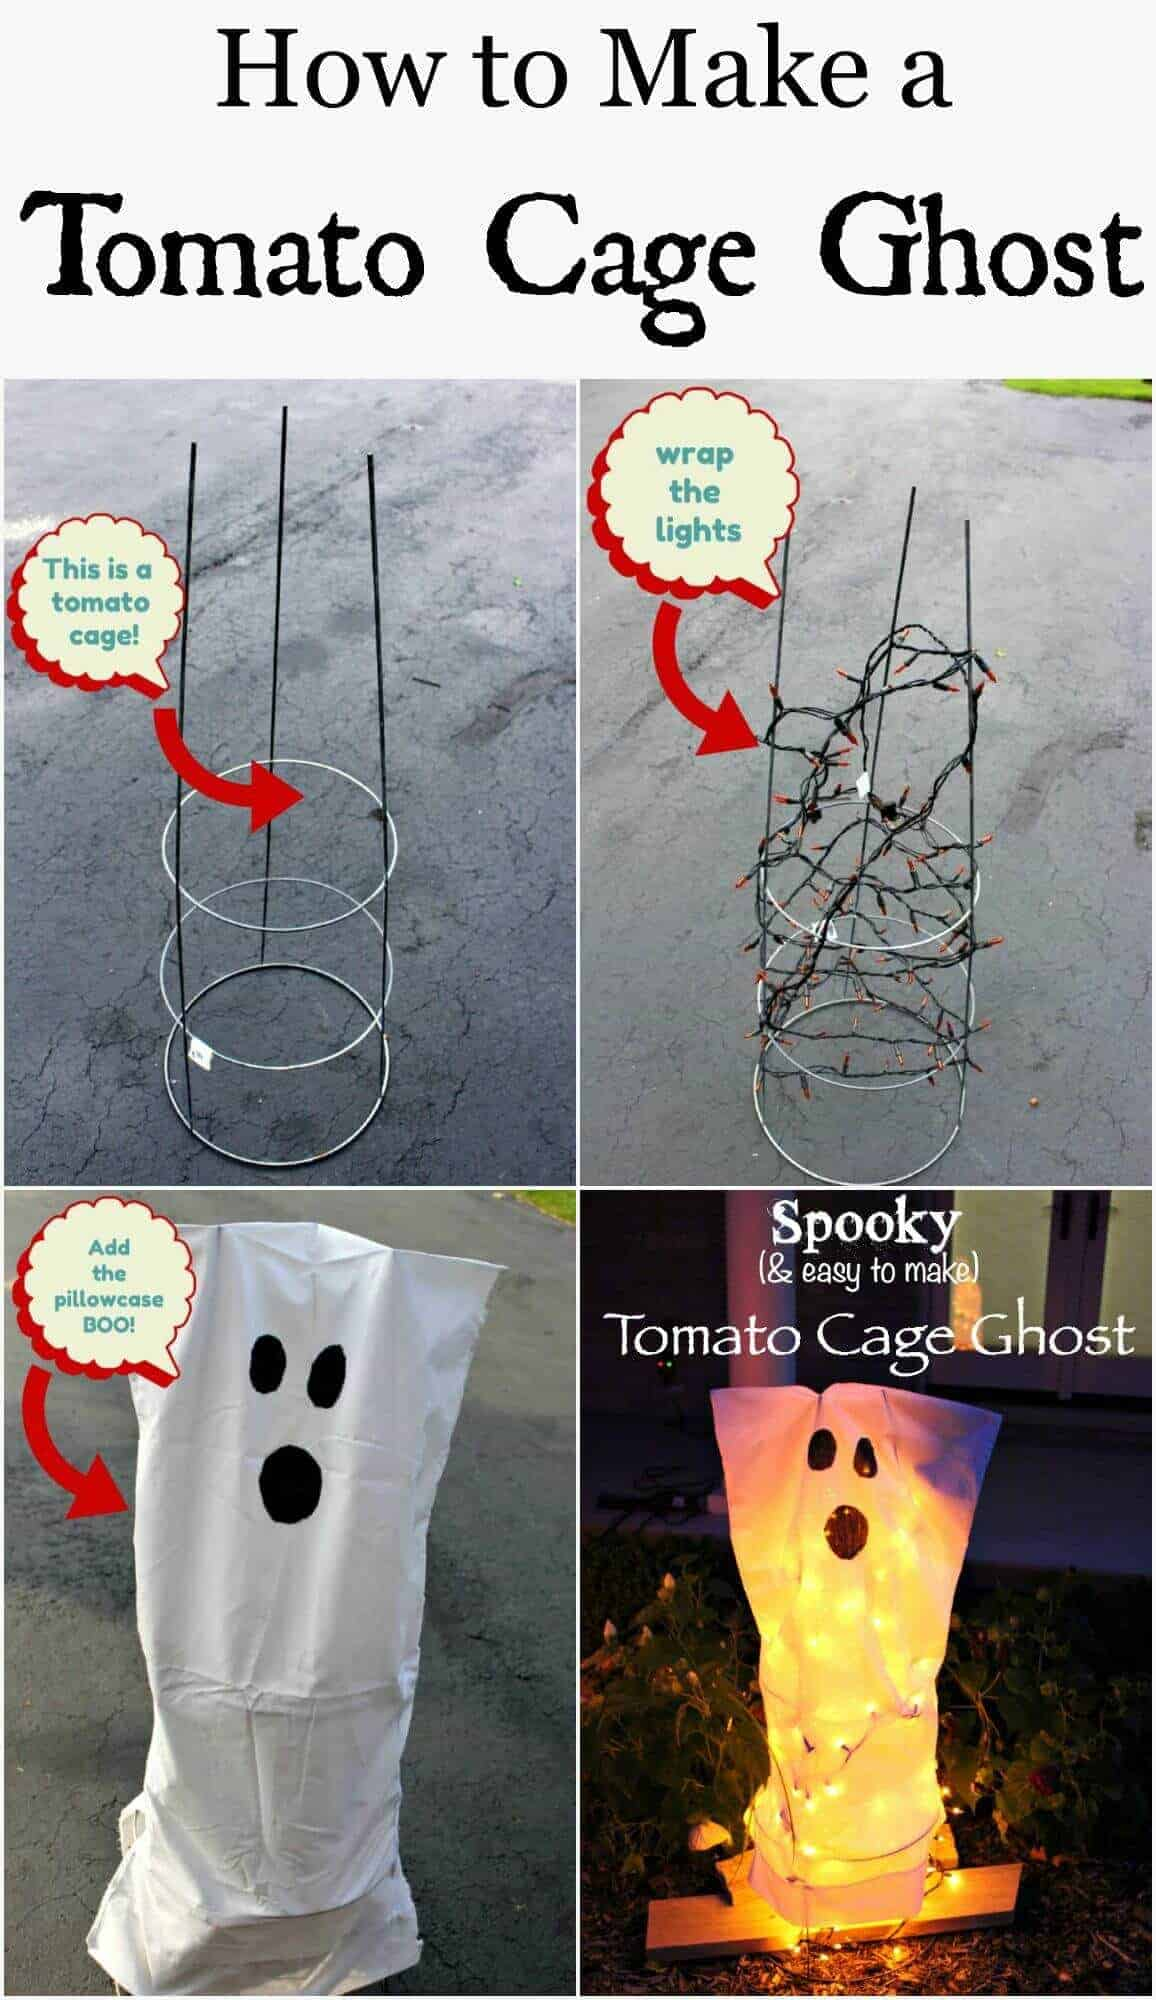 How to Make Your Own Tomato Cage Ghost - only 4 things needed and 15 minutes to make this adorable DIY Halloween Decoration